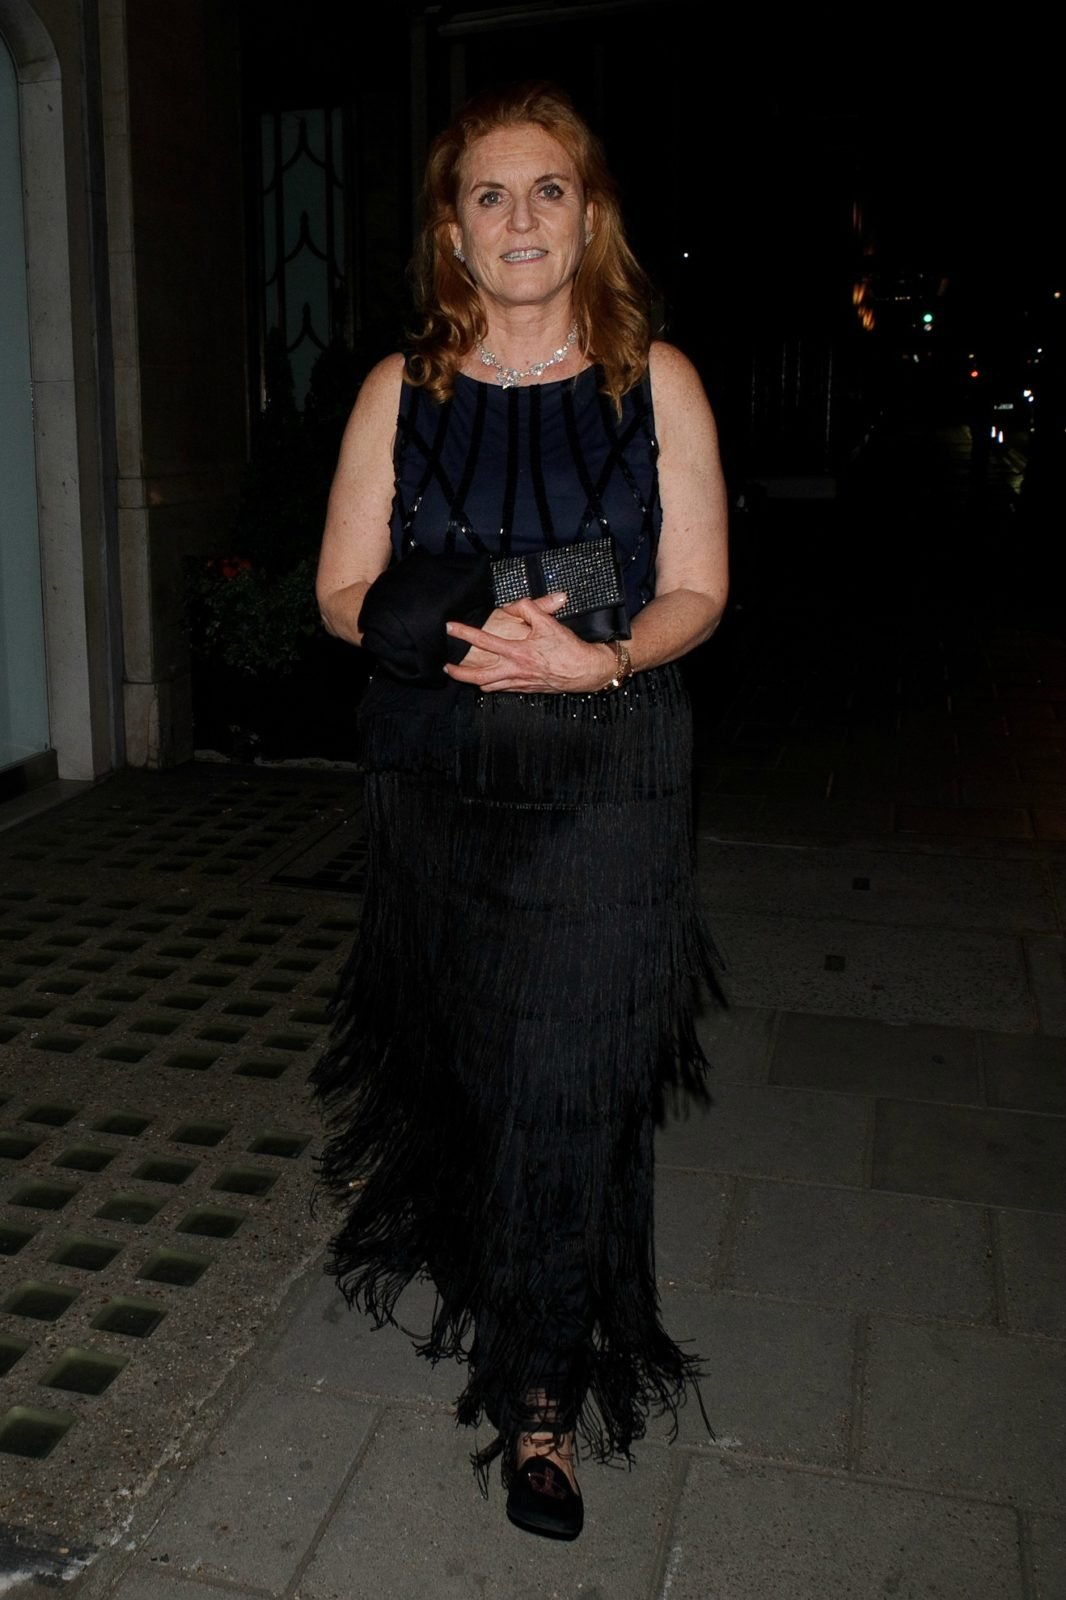 Sarah Ferguson went all out in the full-length black dress. Source: Getty.